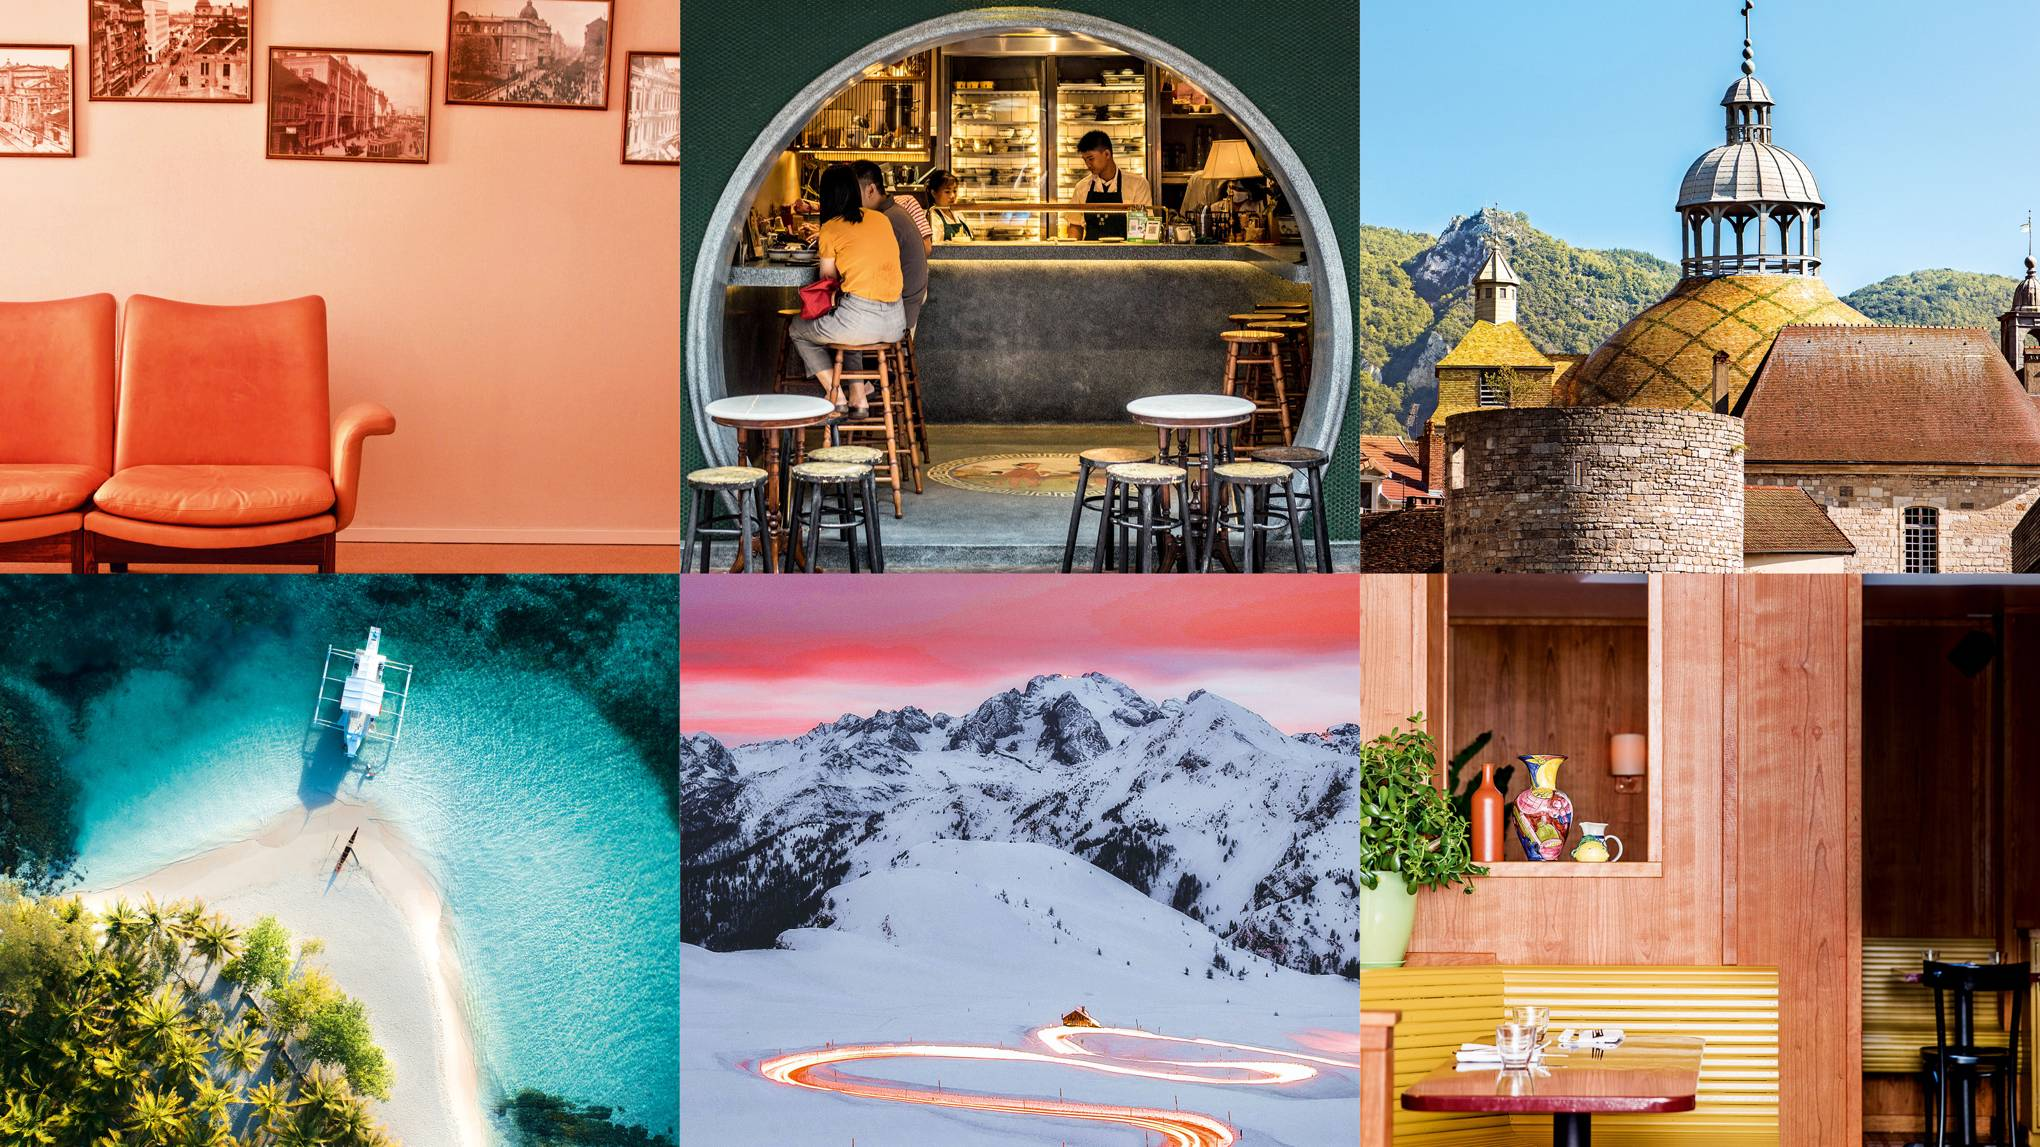 12 reasons you should buy the December 2019 issue of Condé Nast Traveller